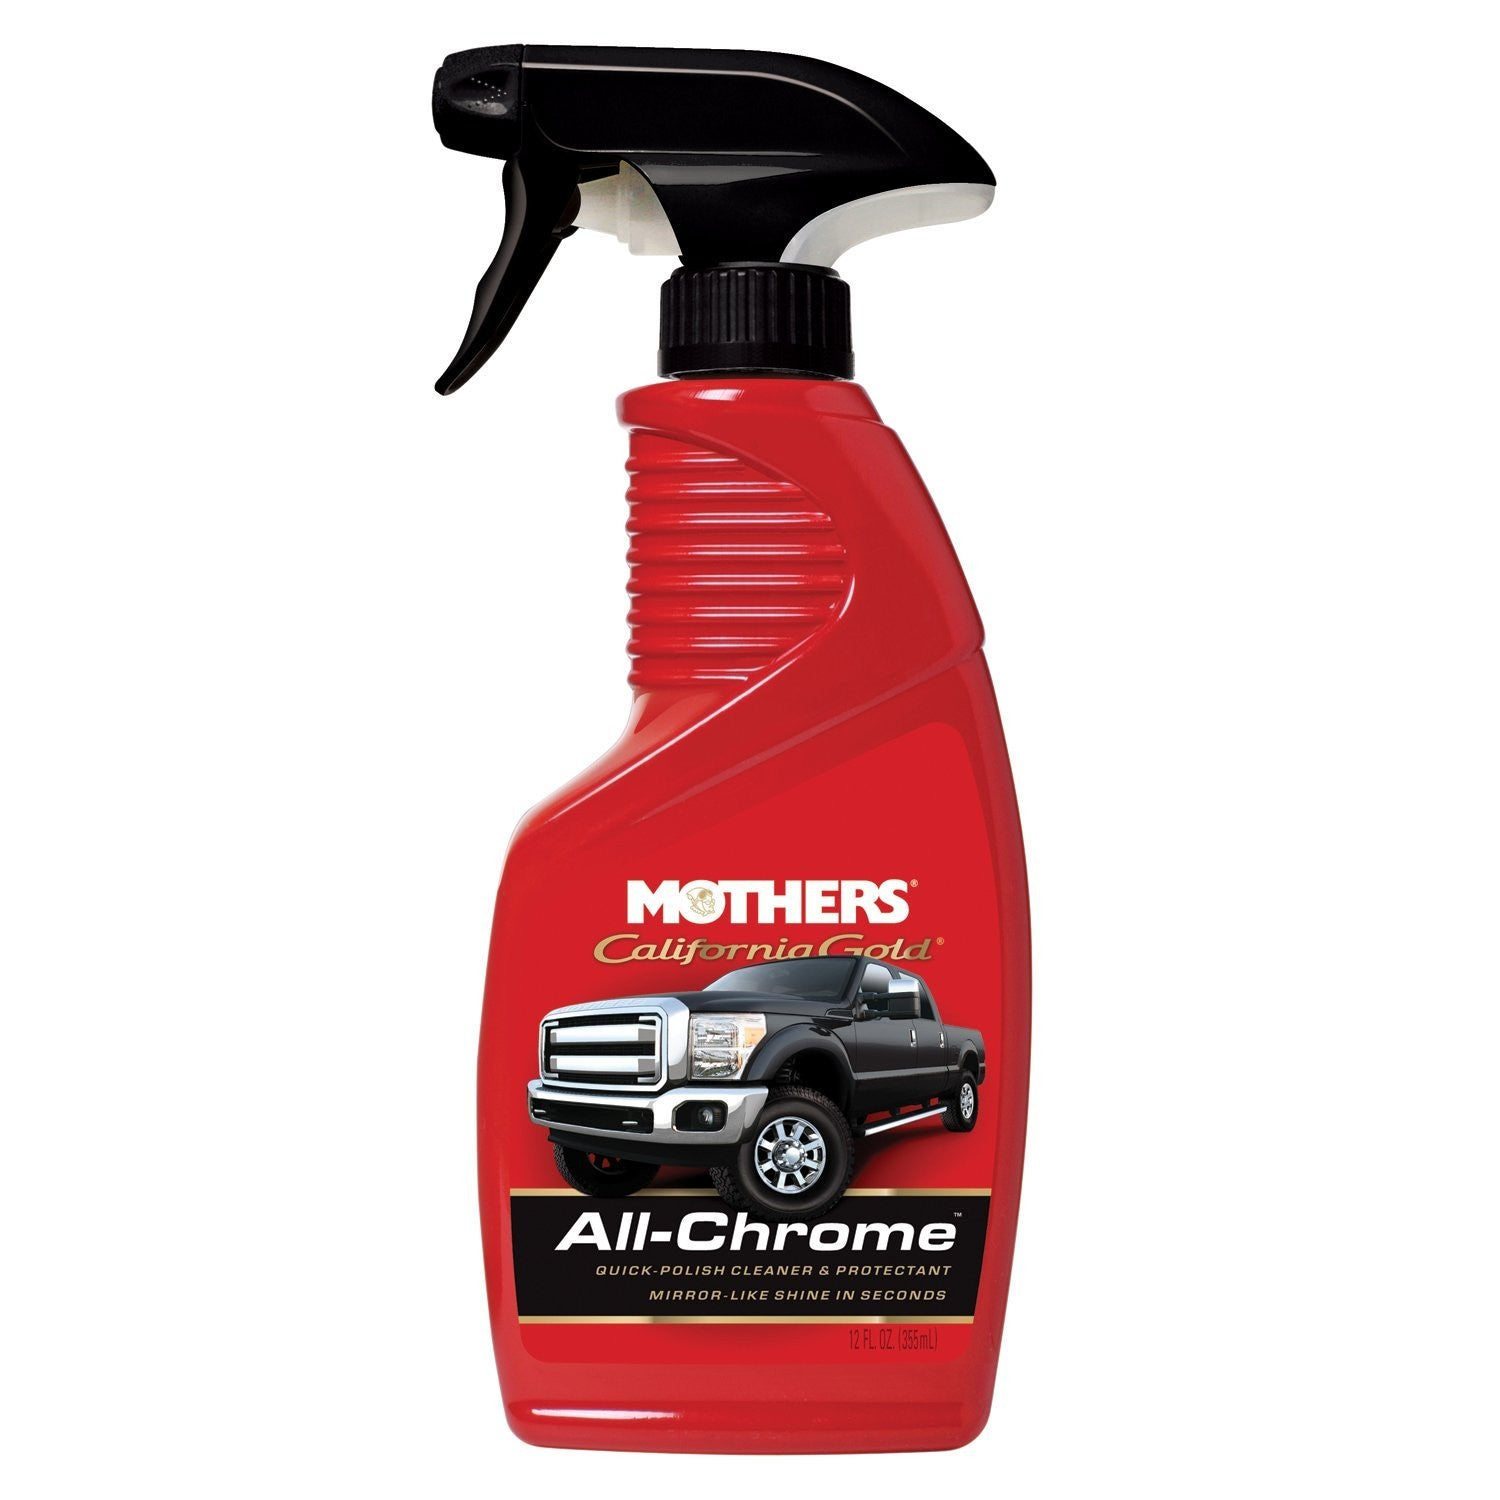 Mothers All Chrome Quick Polish Cleaner 12 oz.